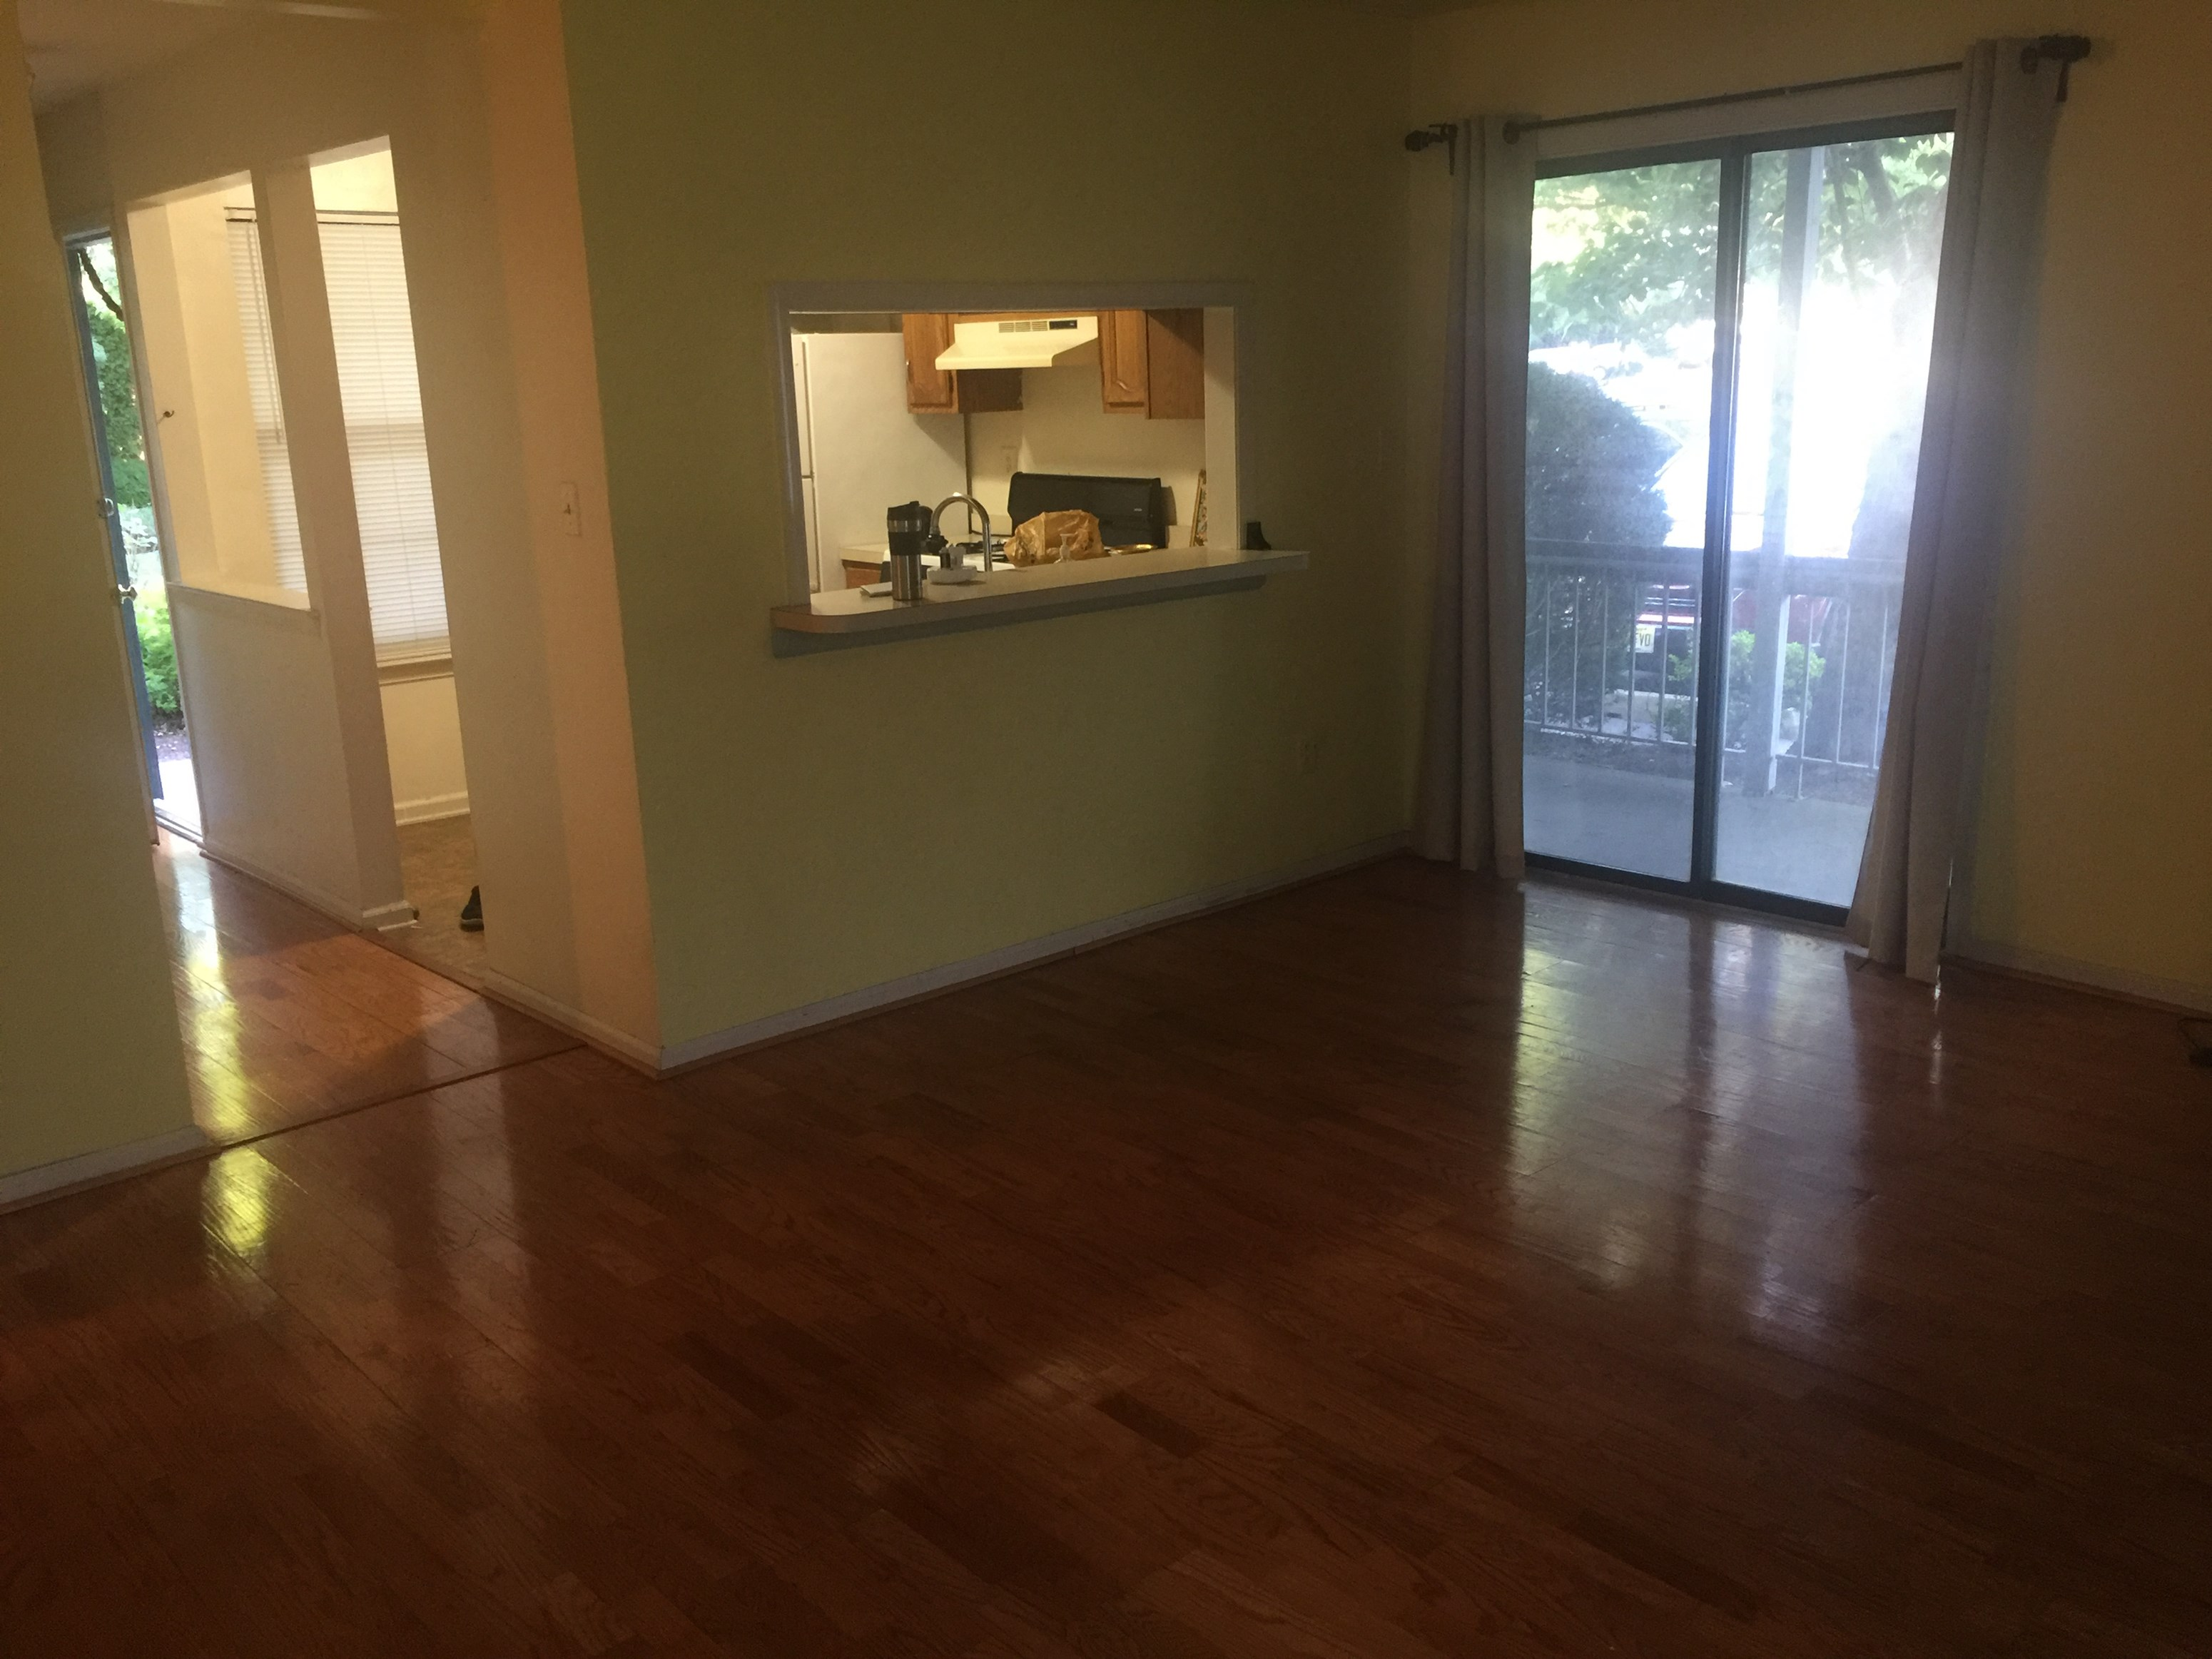 1 BHK Condo Near MetroPark Station. 1 Bedroom House for Rent in Iselin  NJ   One Bedroom Homes for